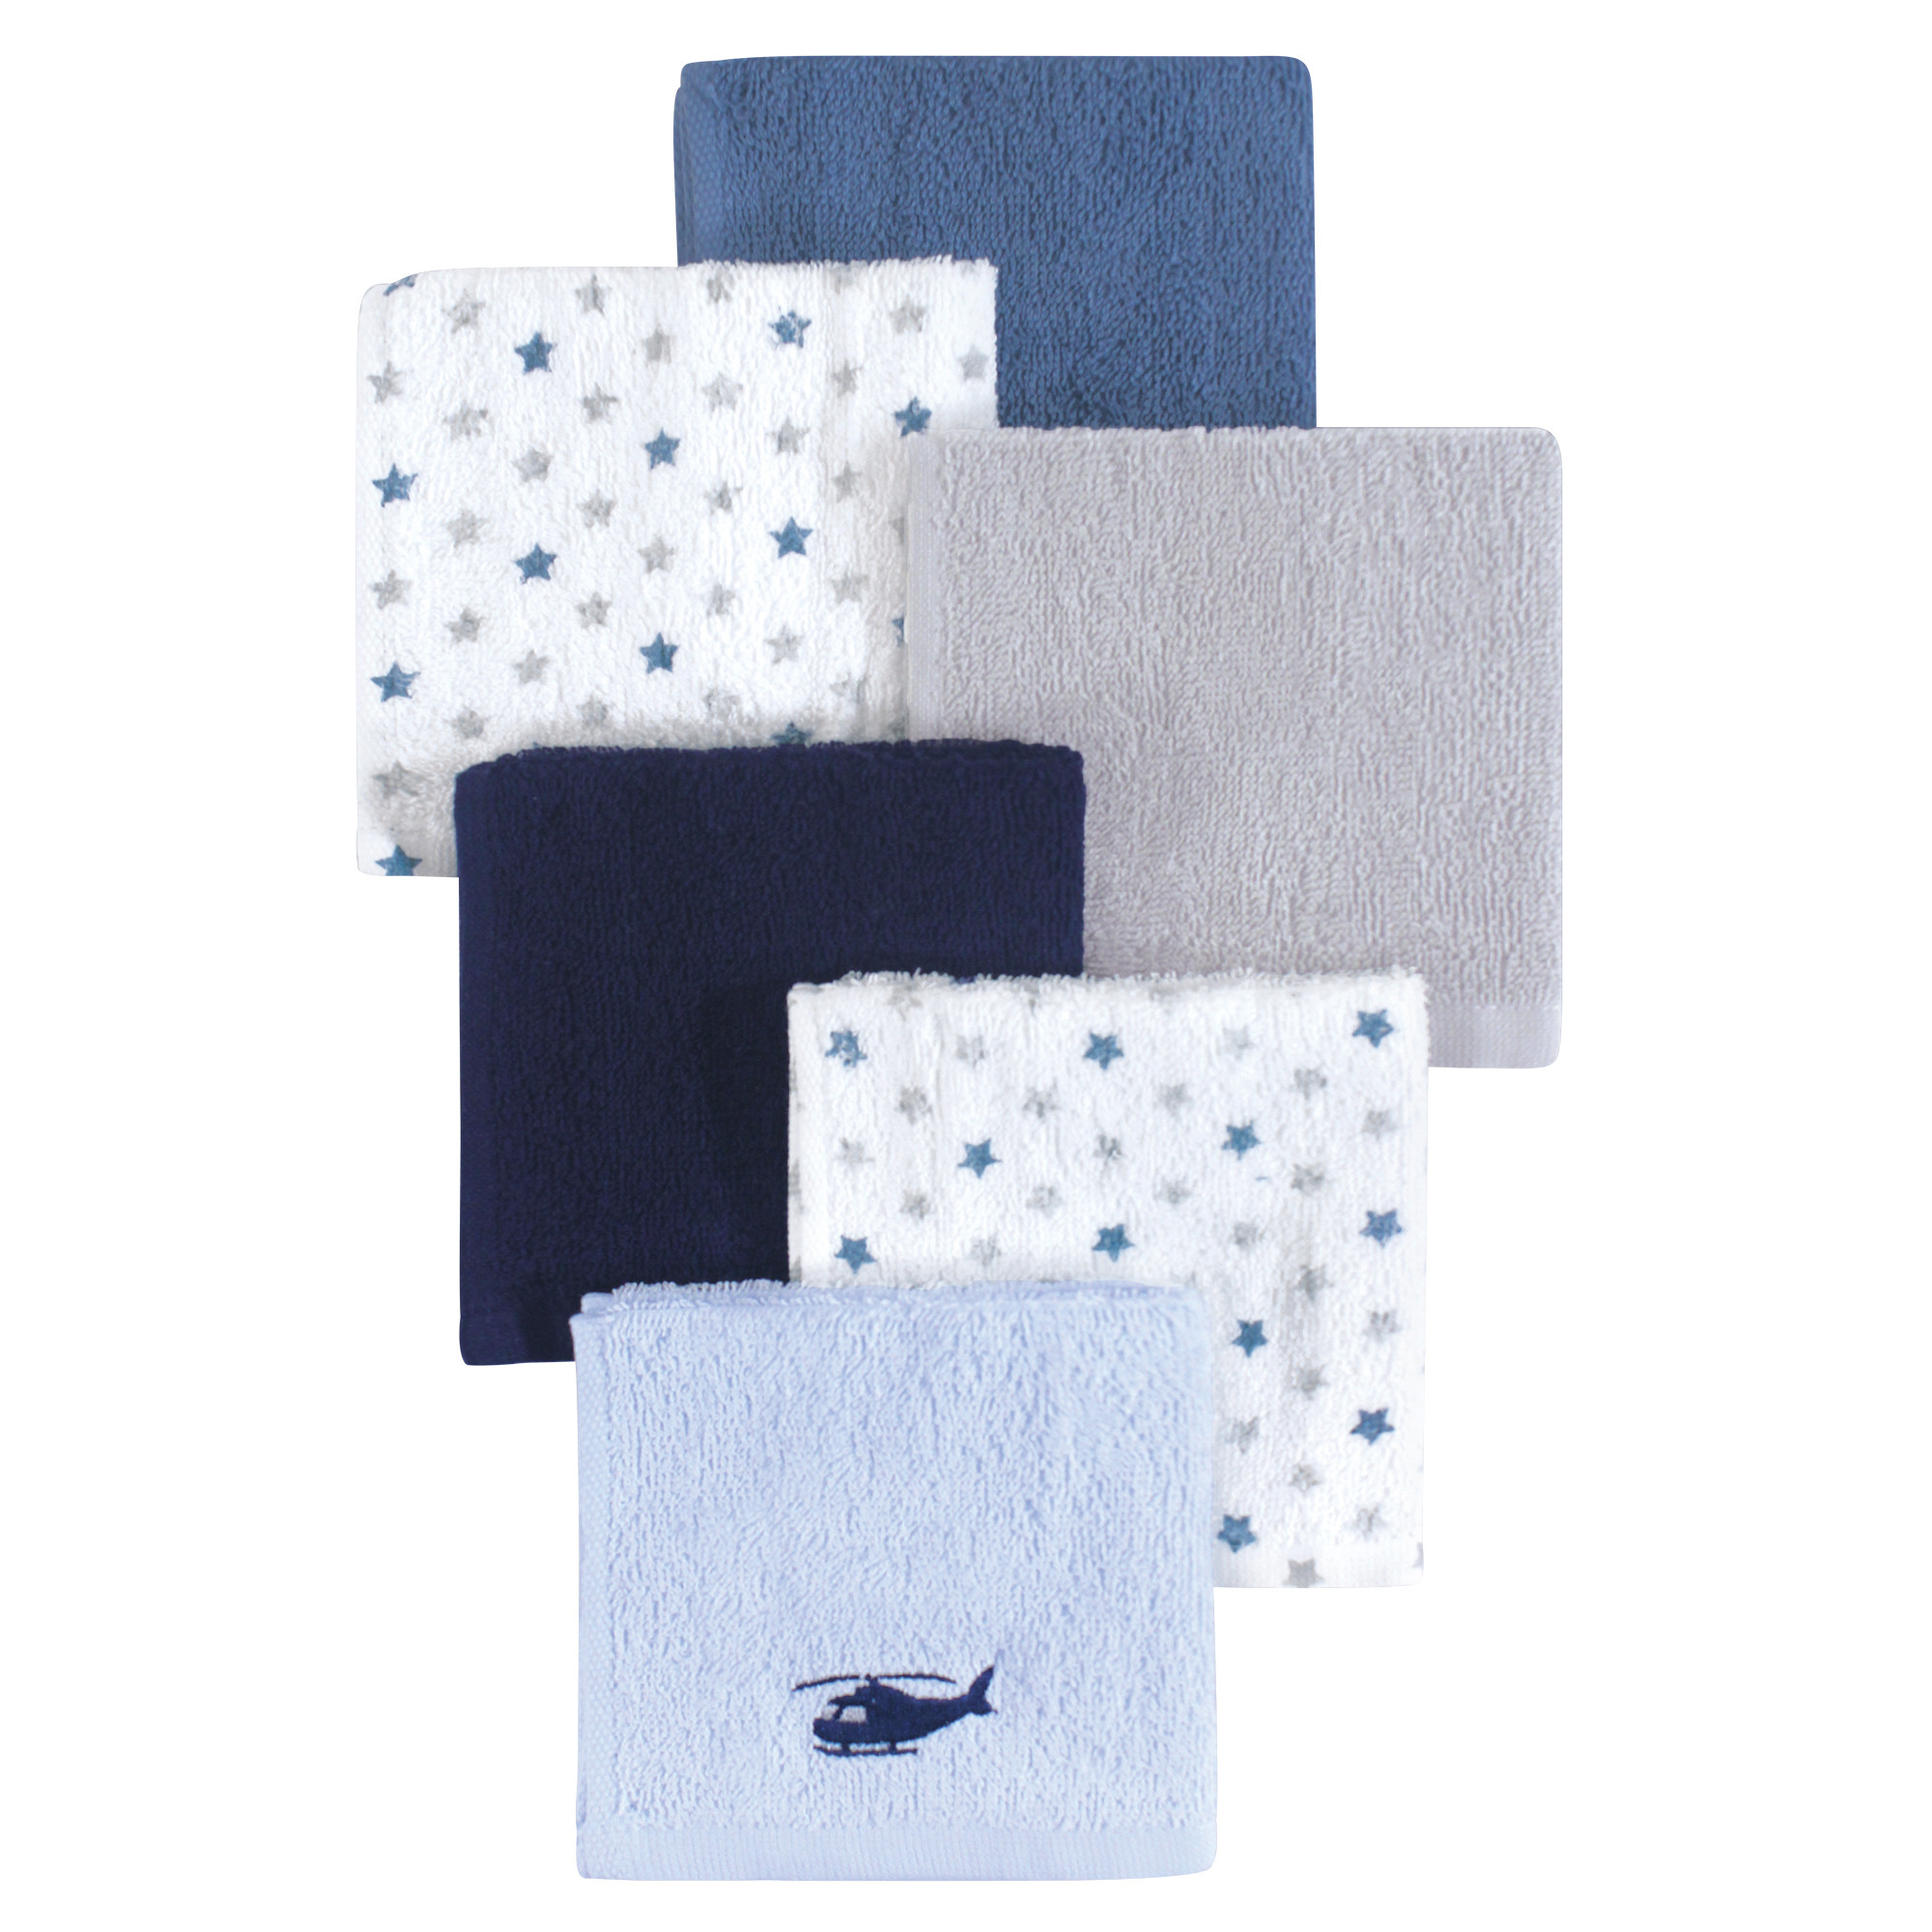 Hudson Baby Woven Terry Washcloths, 6 Pack, Helicopter by Hudson Baby